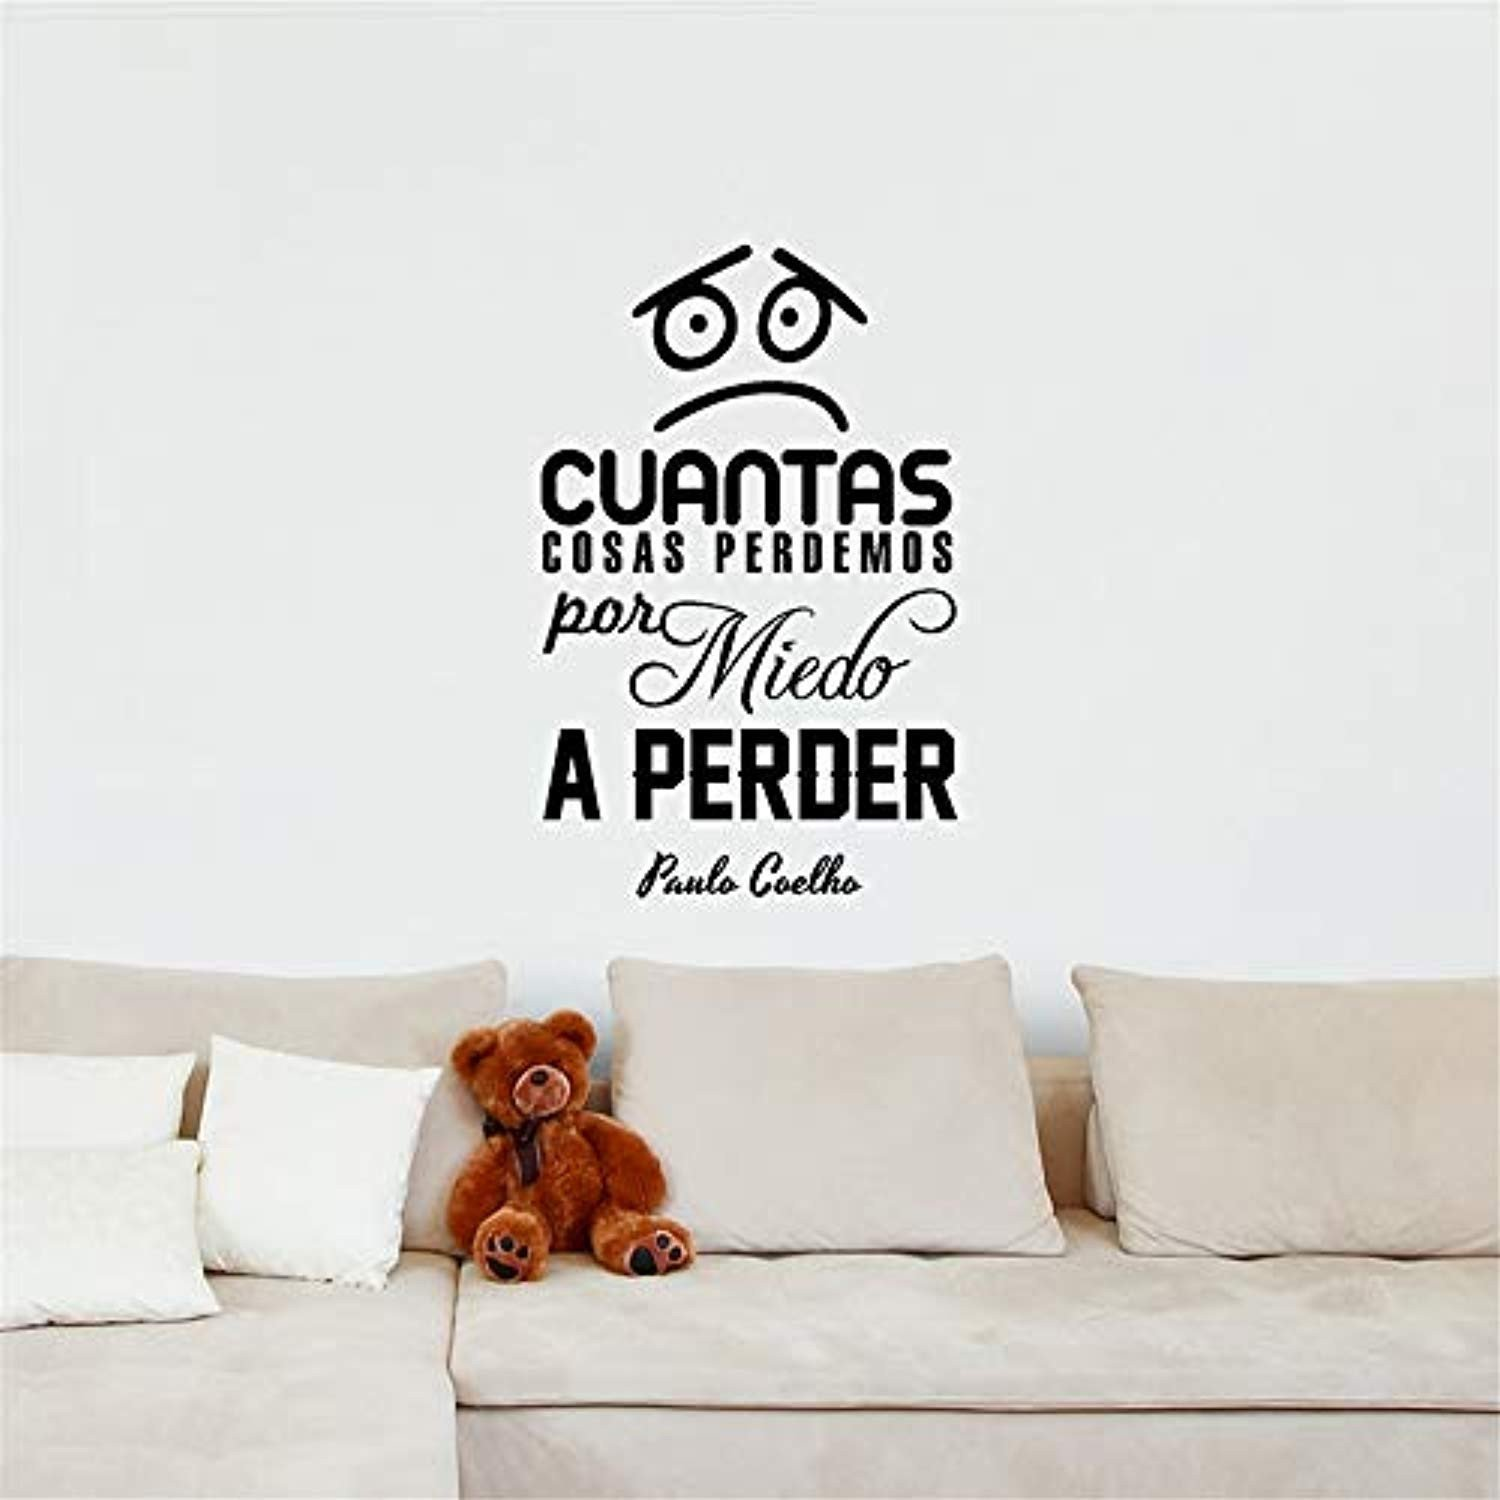 Wall Mural Ideas for Bedroom New Amazon Peel and Stick Mural Spanish Quote Cuántas Cosas